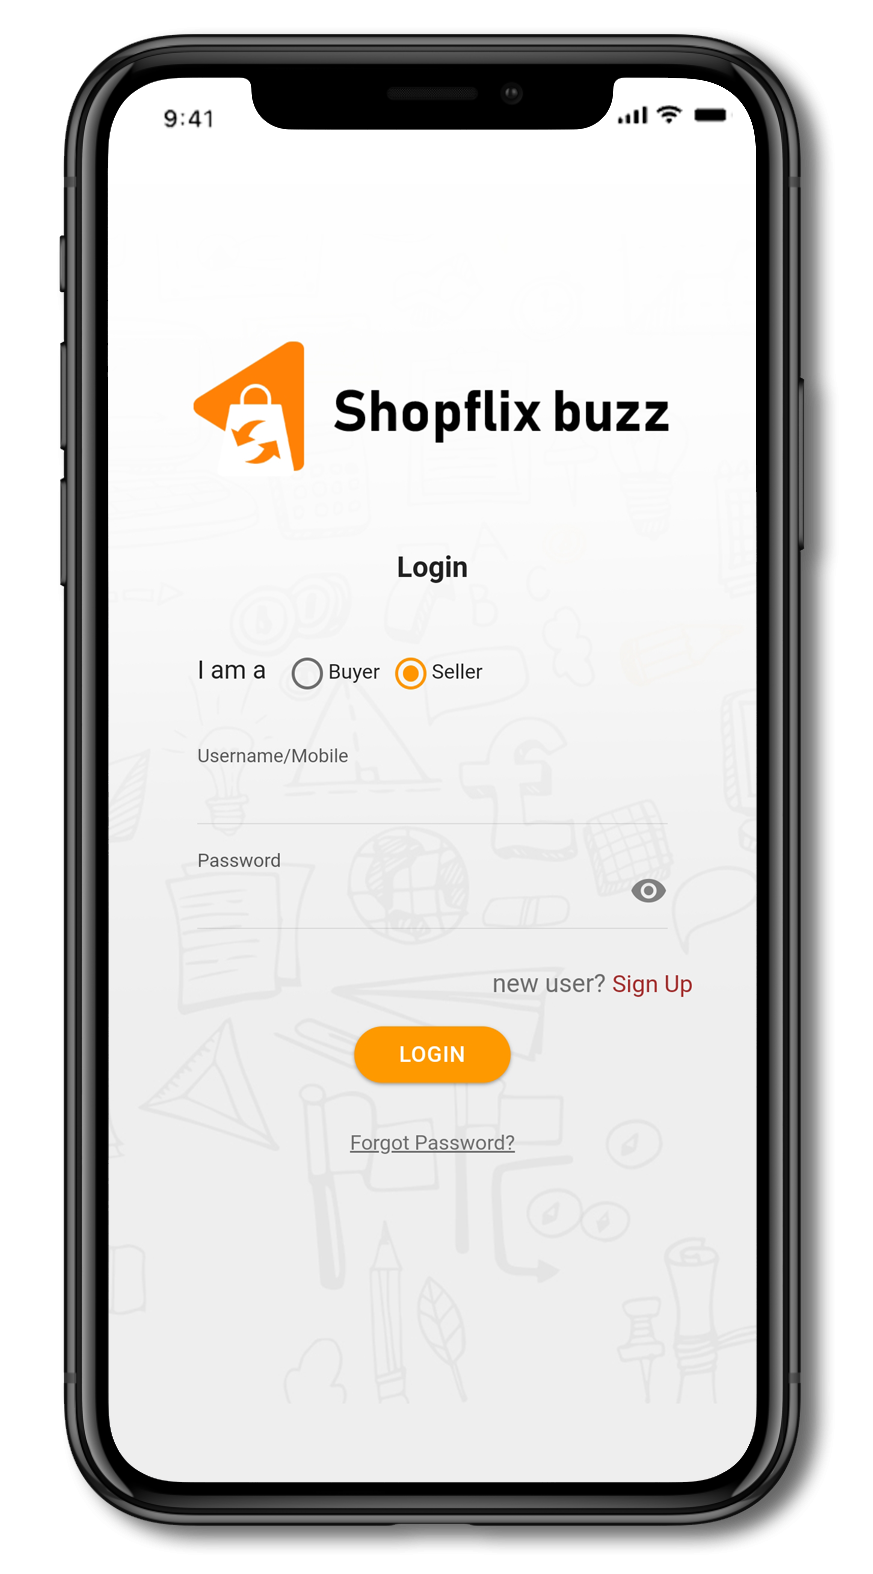 Shopflix buzz 3